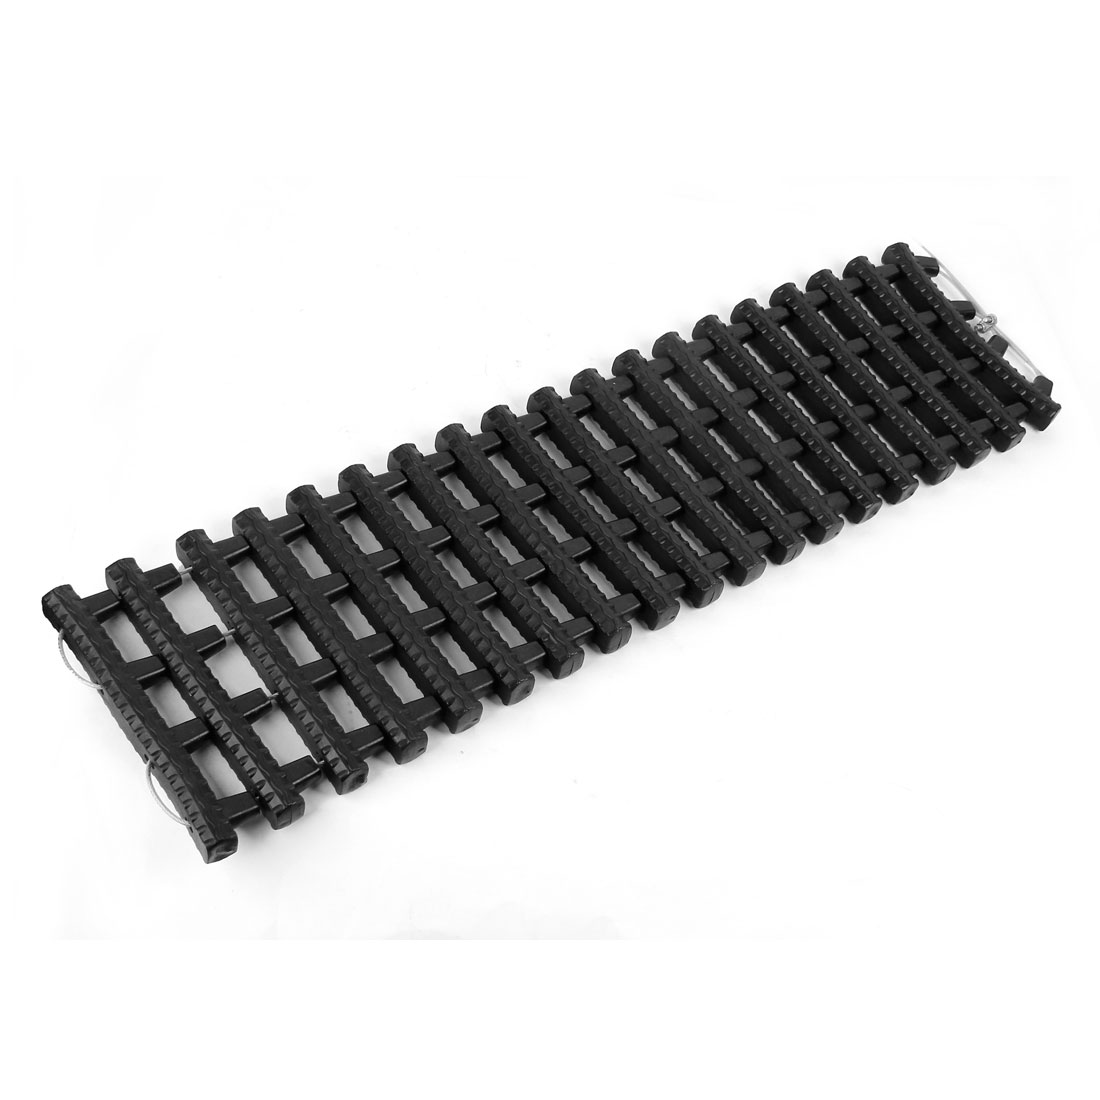 Black Tyre Grip Rubber Recovery Tracks Snow Mud Sand Rescue Gripper Escaper Mats